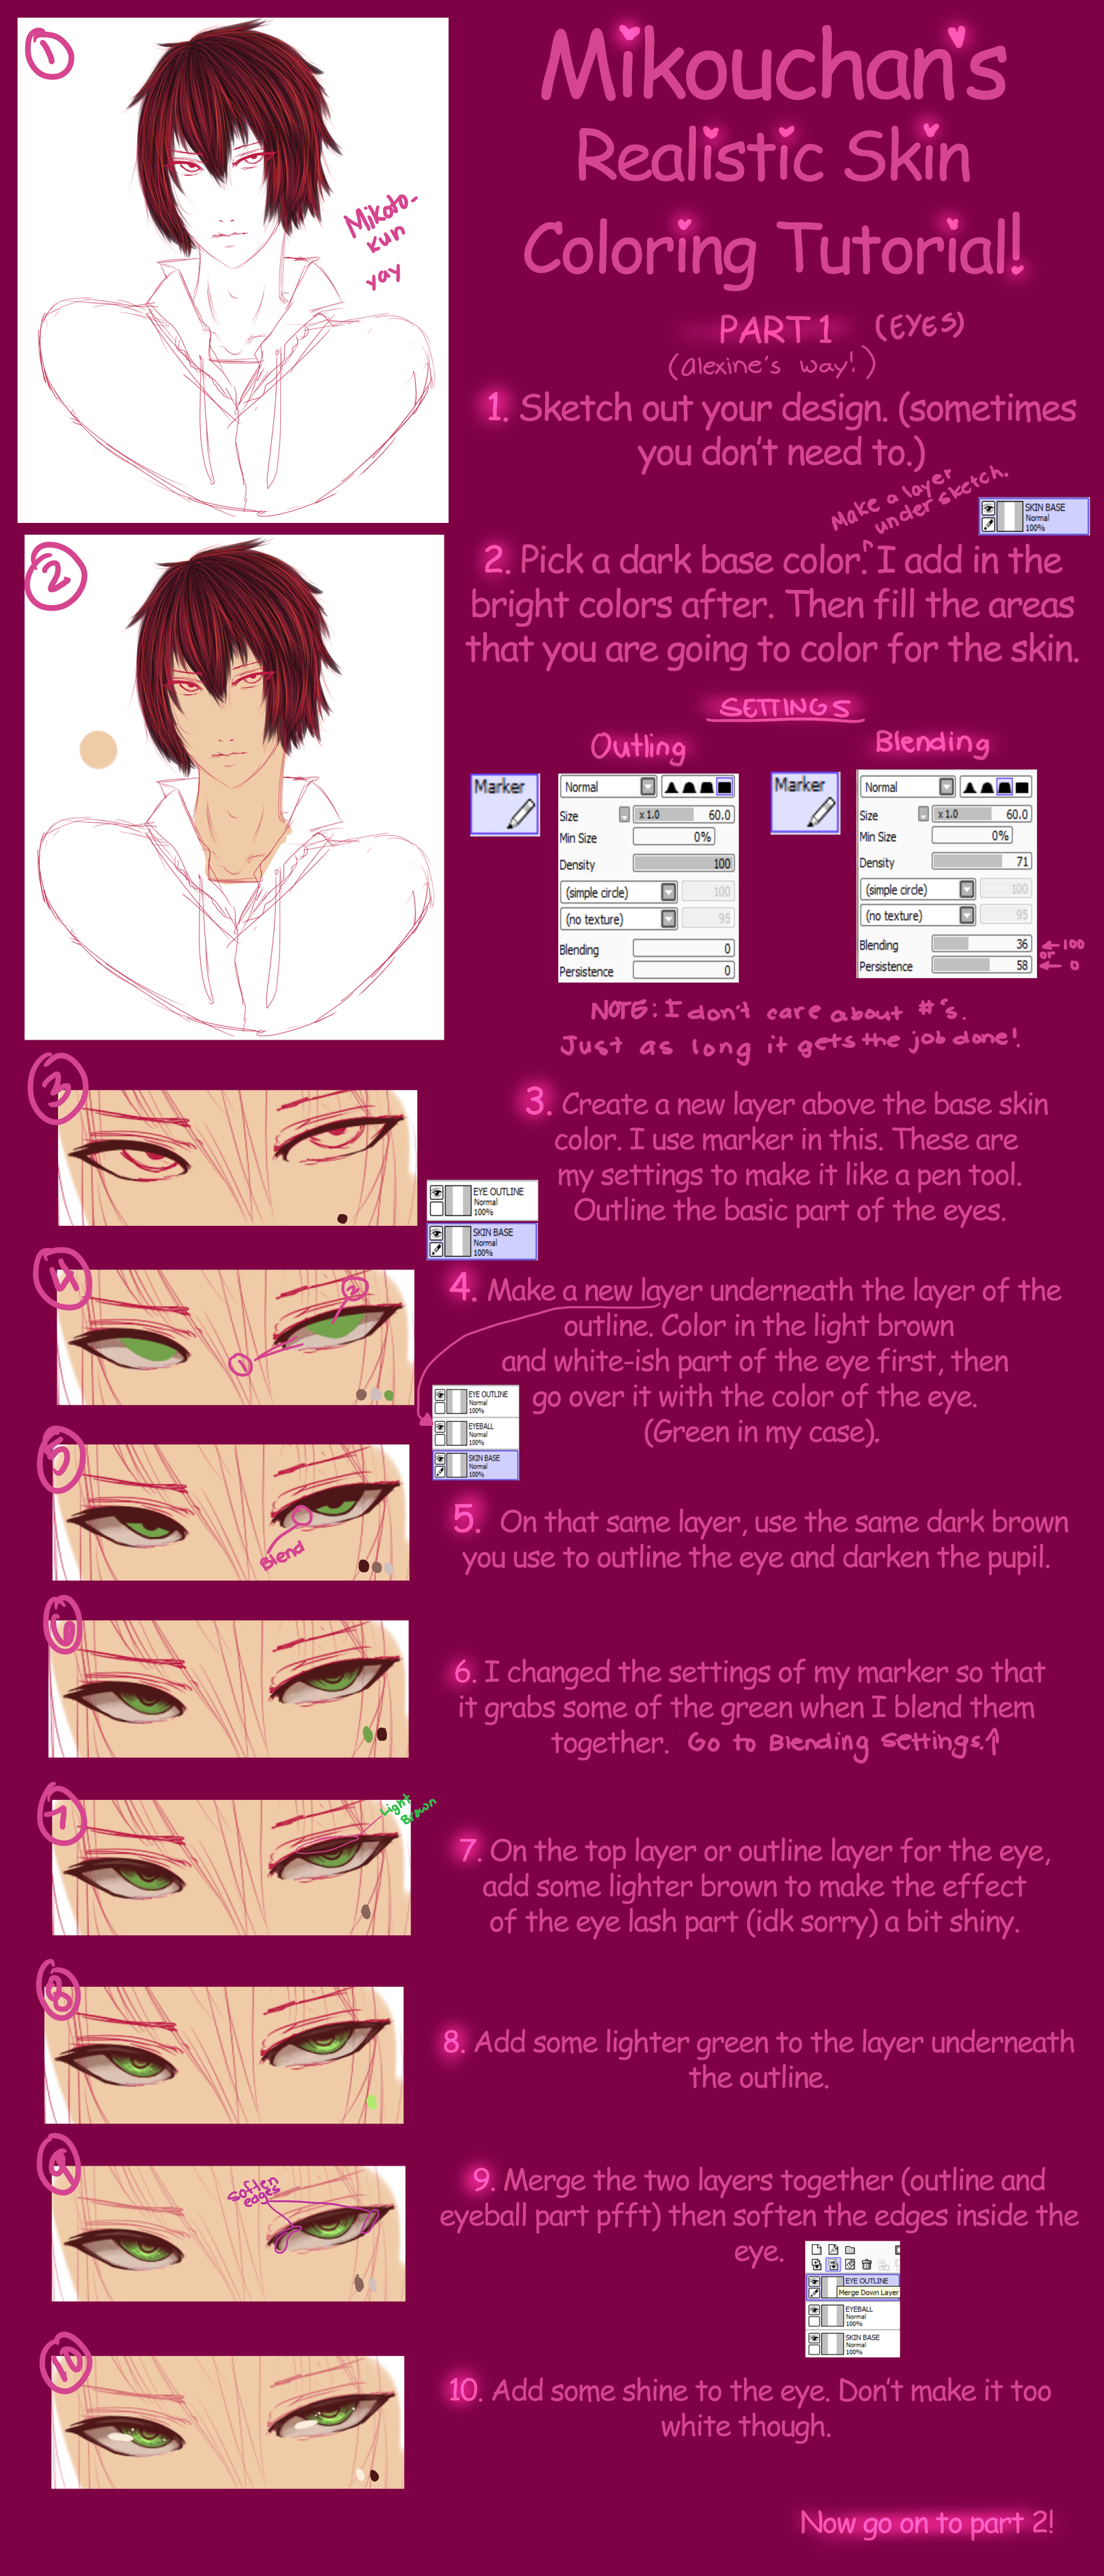 SAI Semi-Realistic Skin Coloring Tutorial Part 1 by Mikouchan